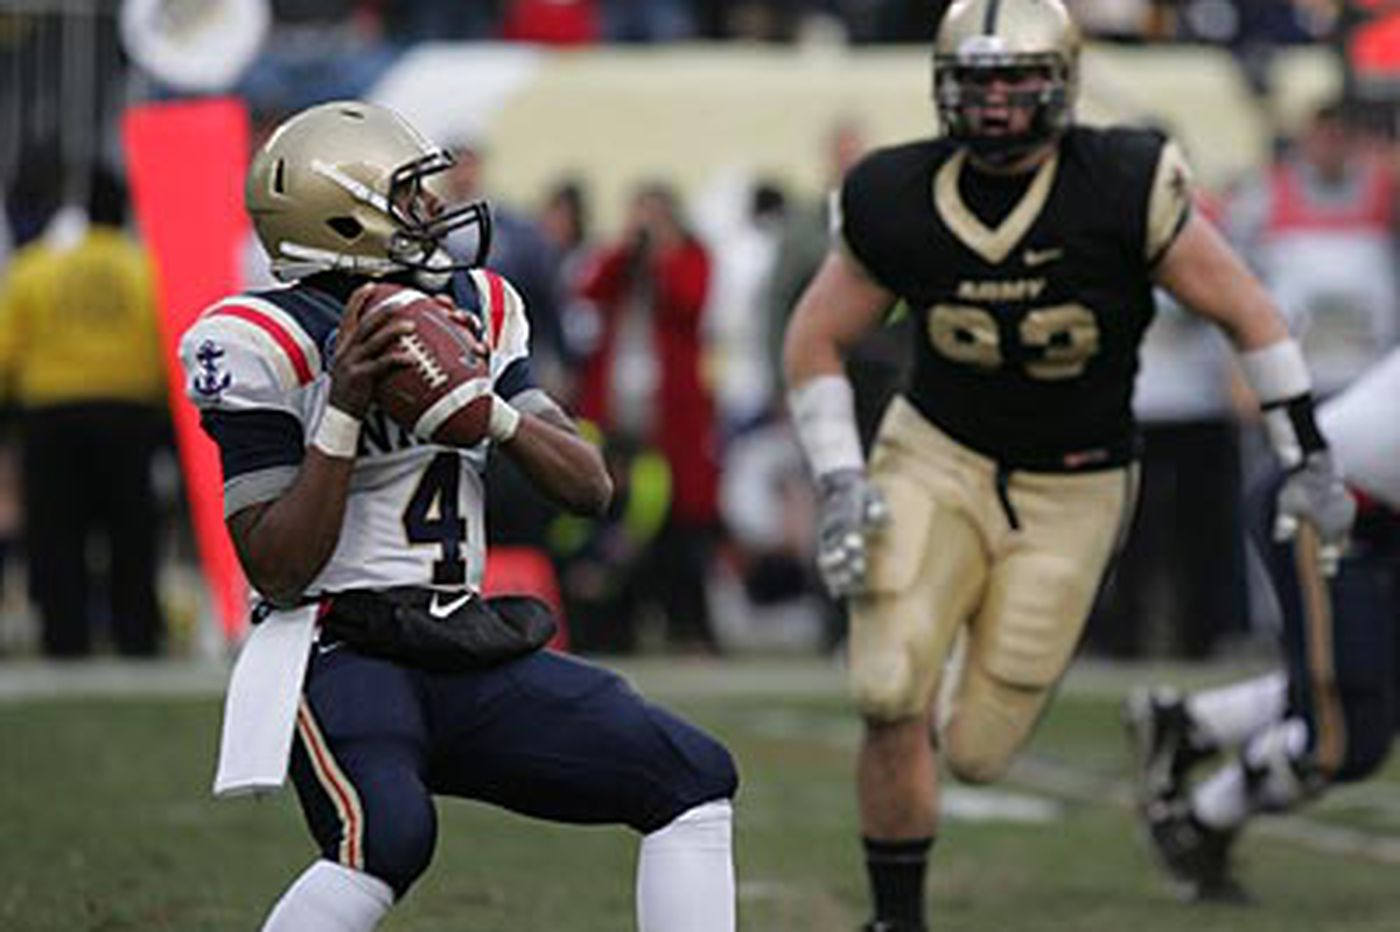 Navy wins ninth straight over Army, 31-17